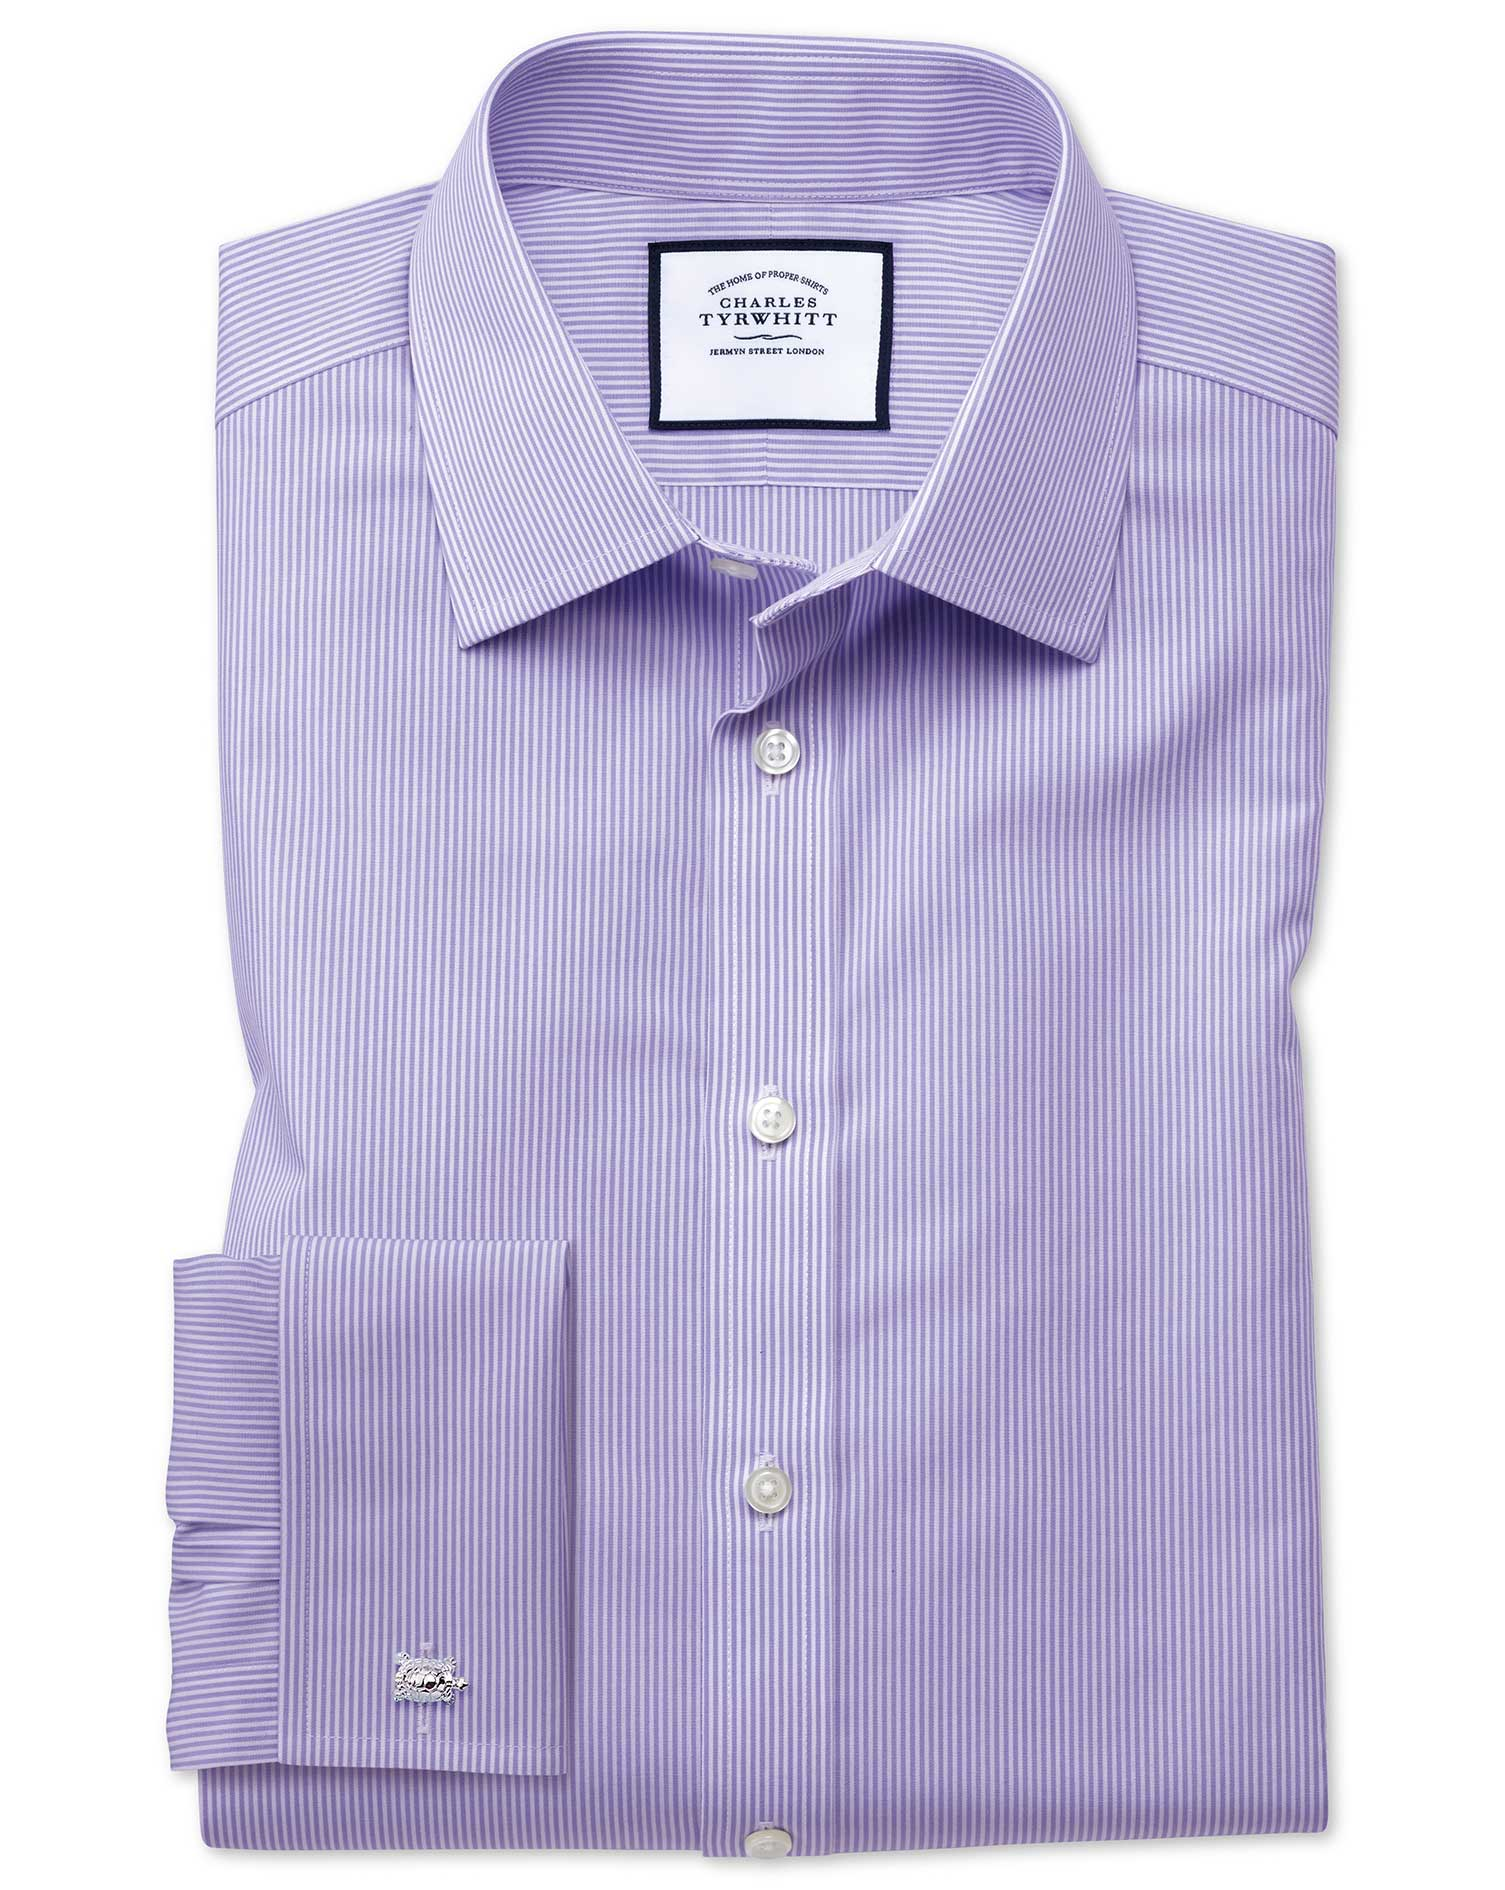 Slim Fit Non-Iron Bengal Stripe Lilac Cotton Formal Shirt Double Cuff Size 18/37 by Charles Tyrwhitt